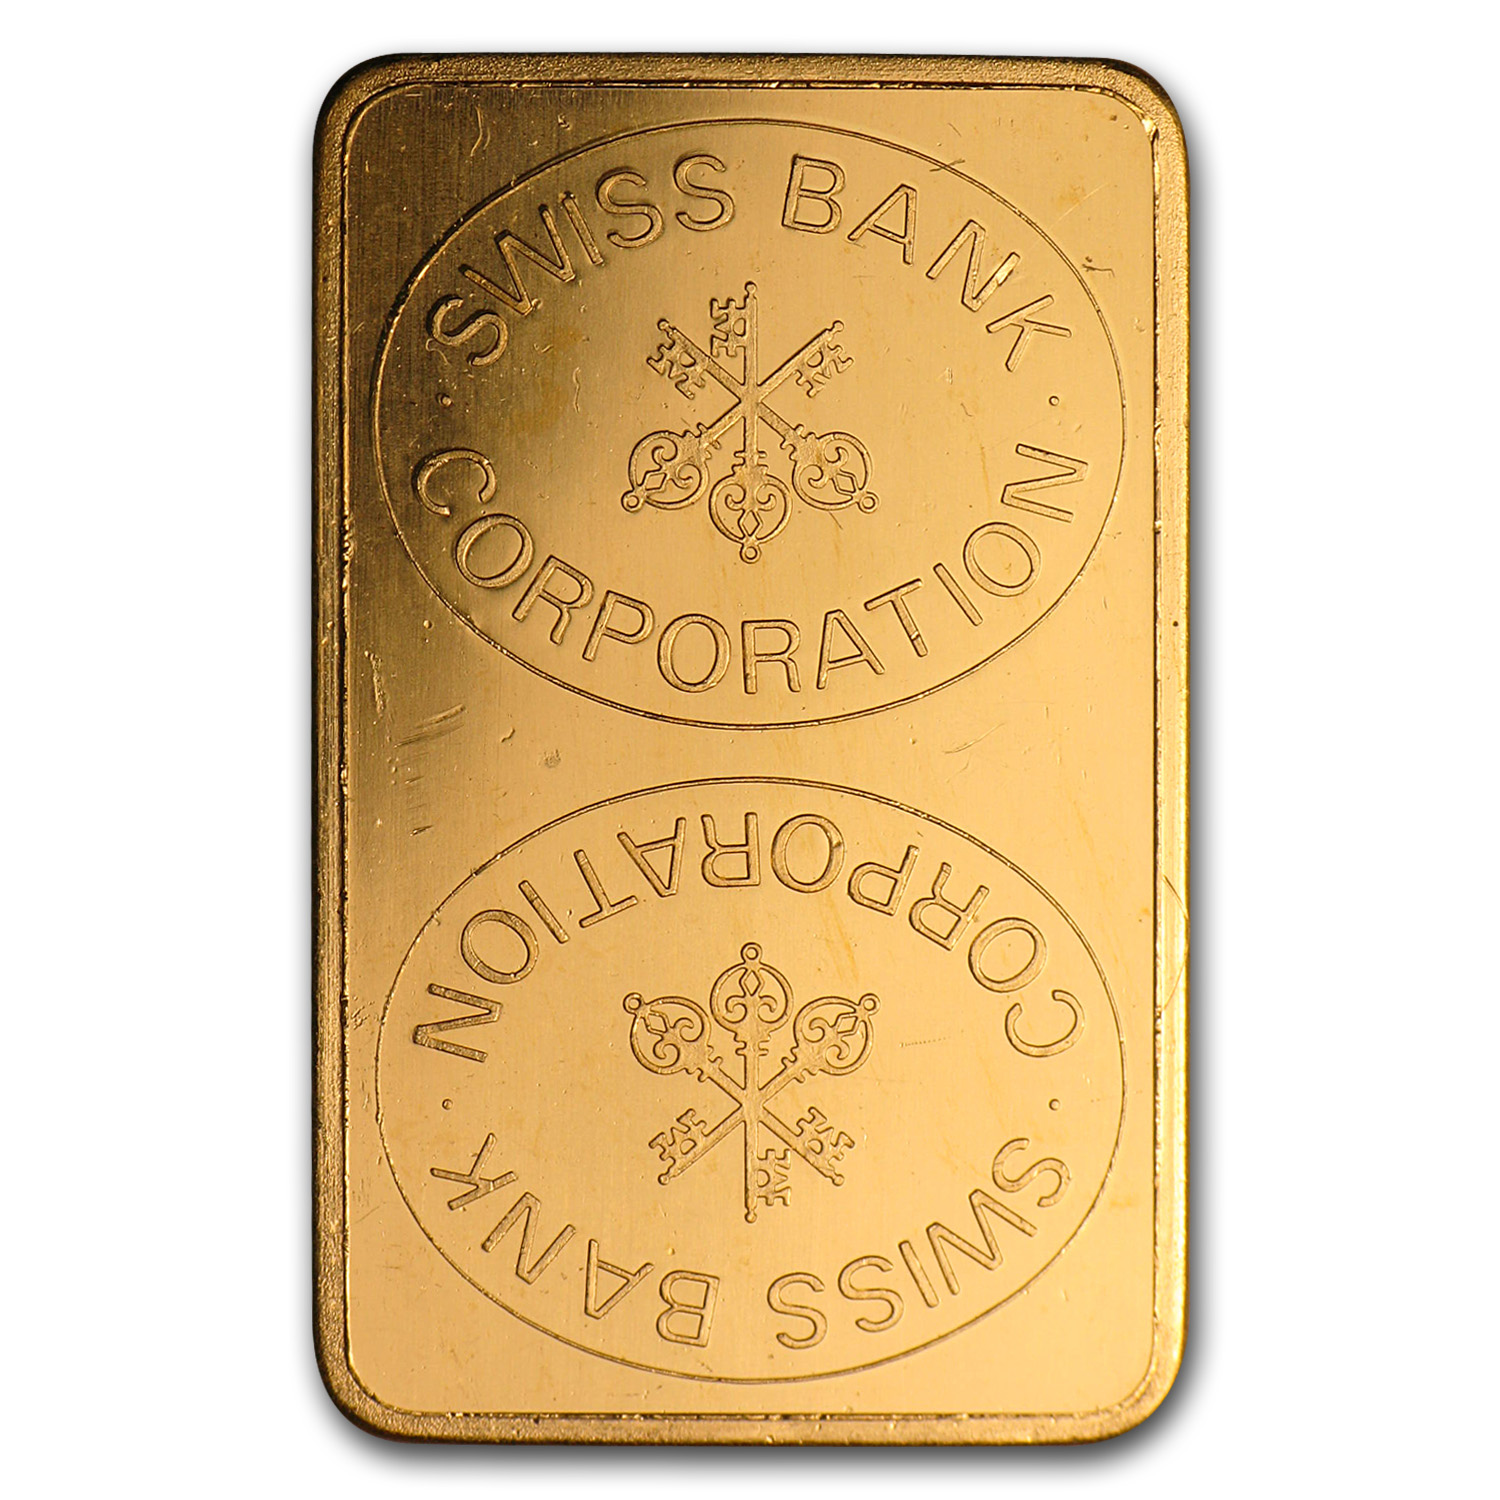 10 gram Gold Bar - Swiss Bank Corporation